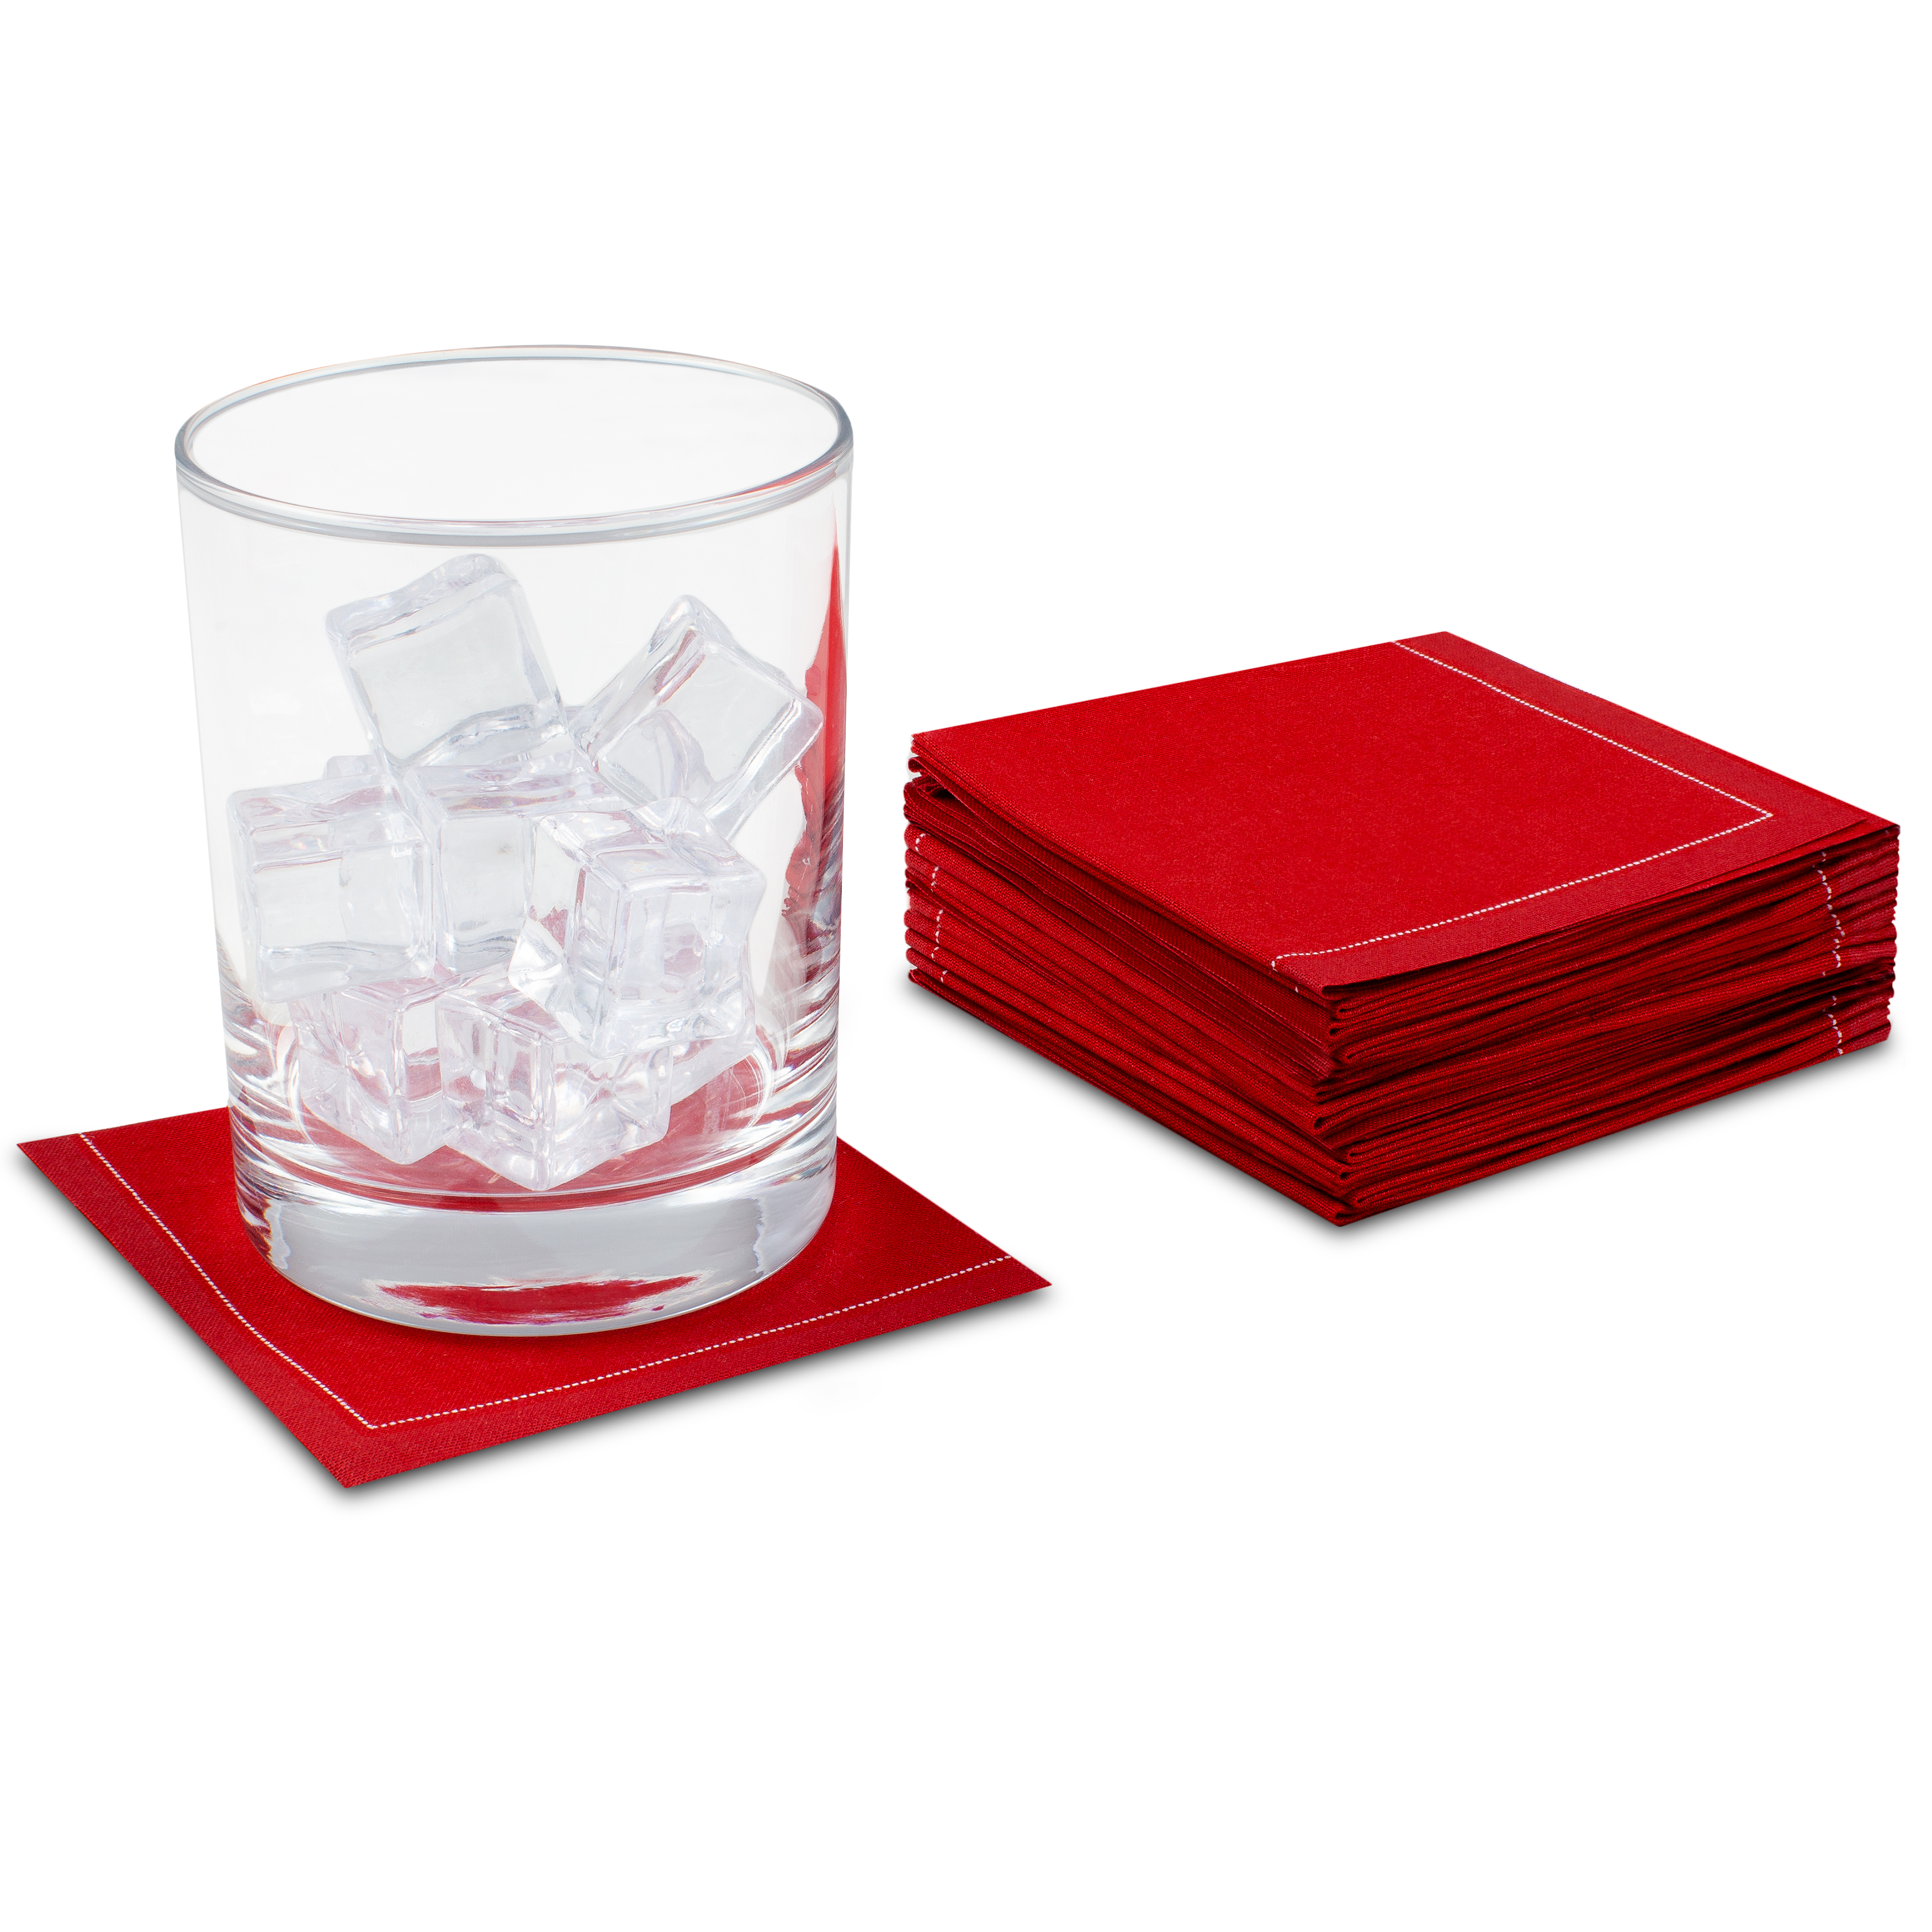 "Red Cotton 1/4 Fold Cocktail (140 GSM) - 8"" x 8"" (folded 4"" x 4"") - 600 units"